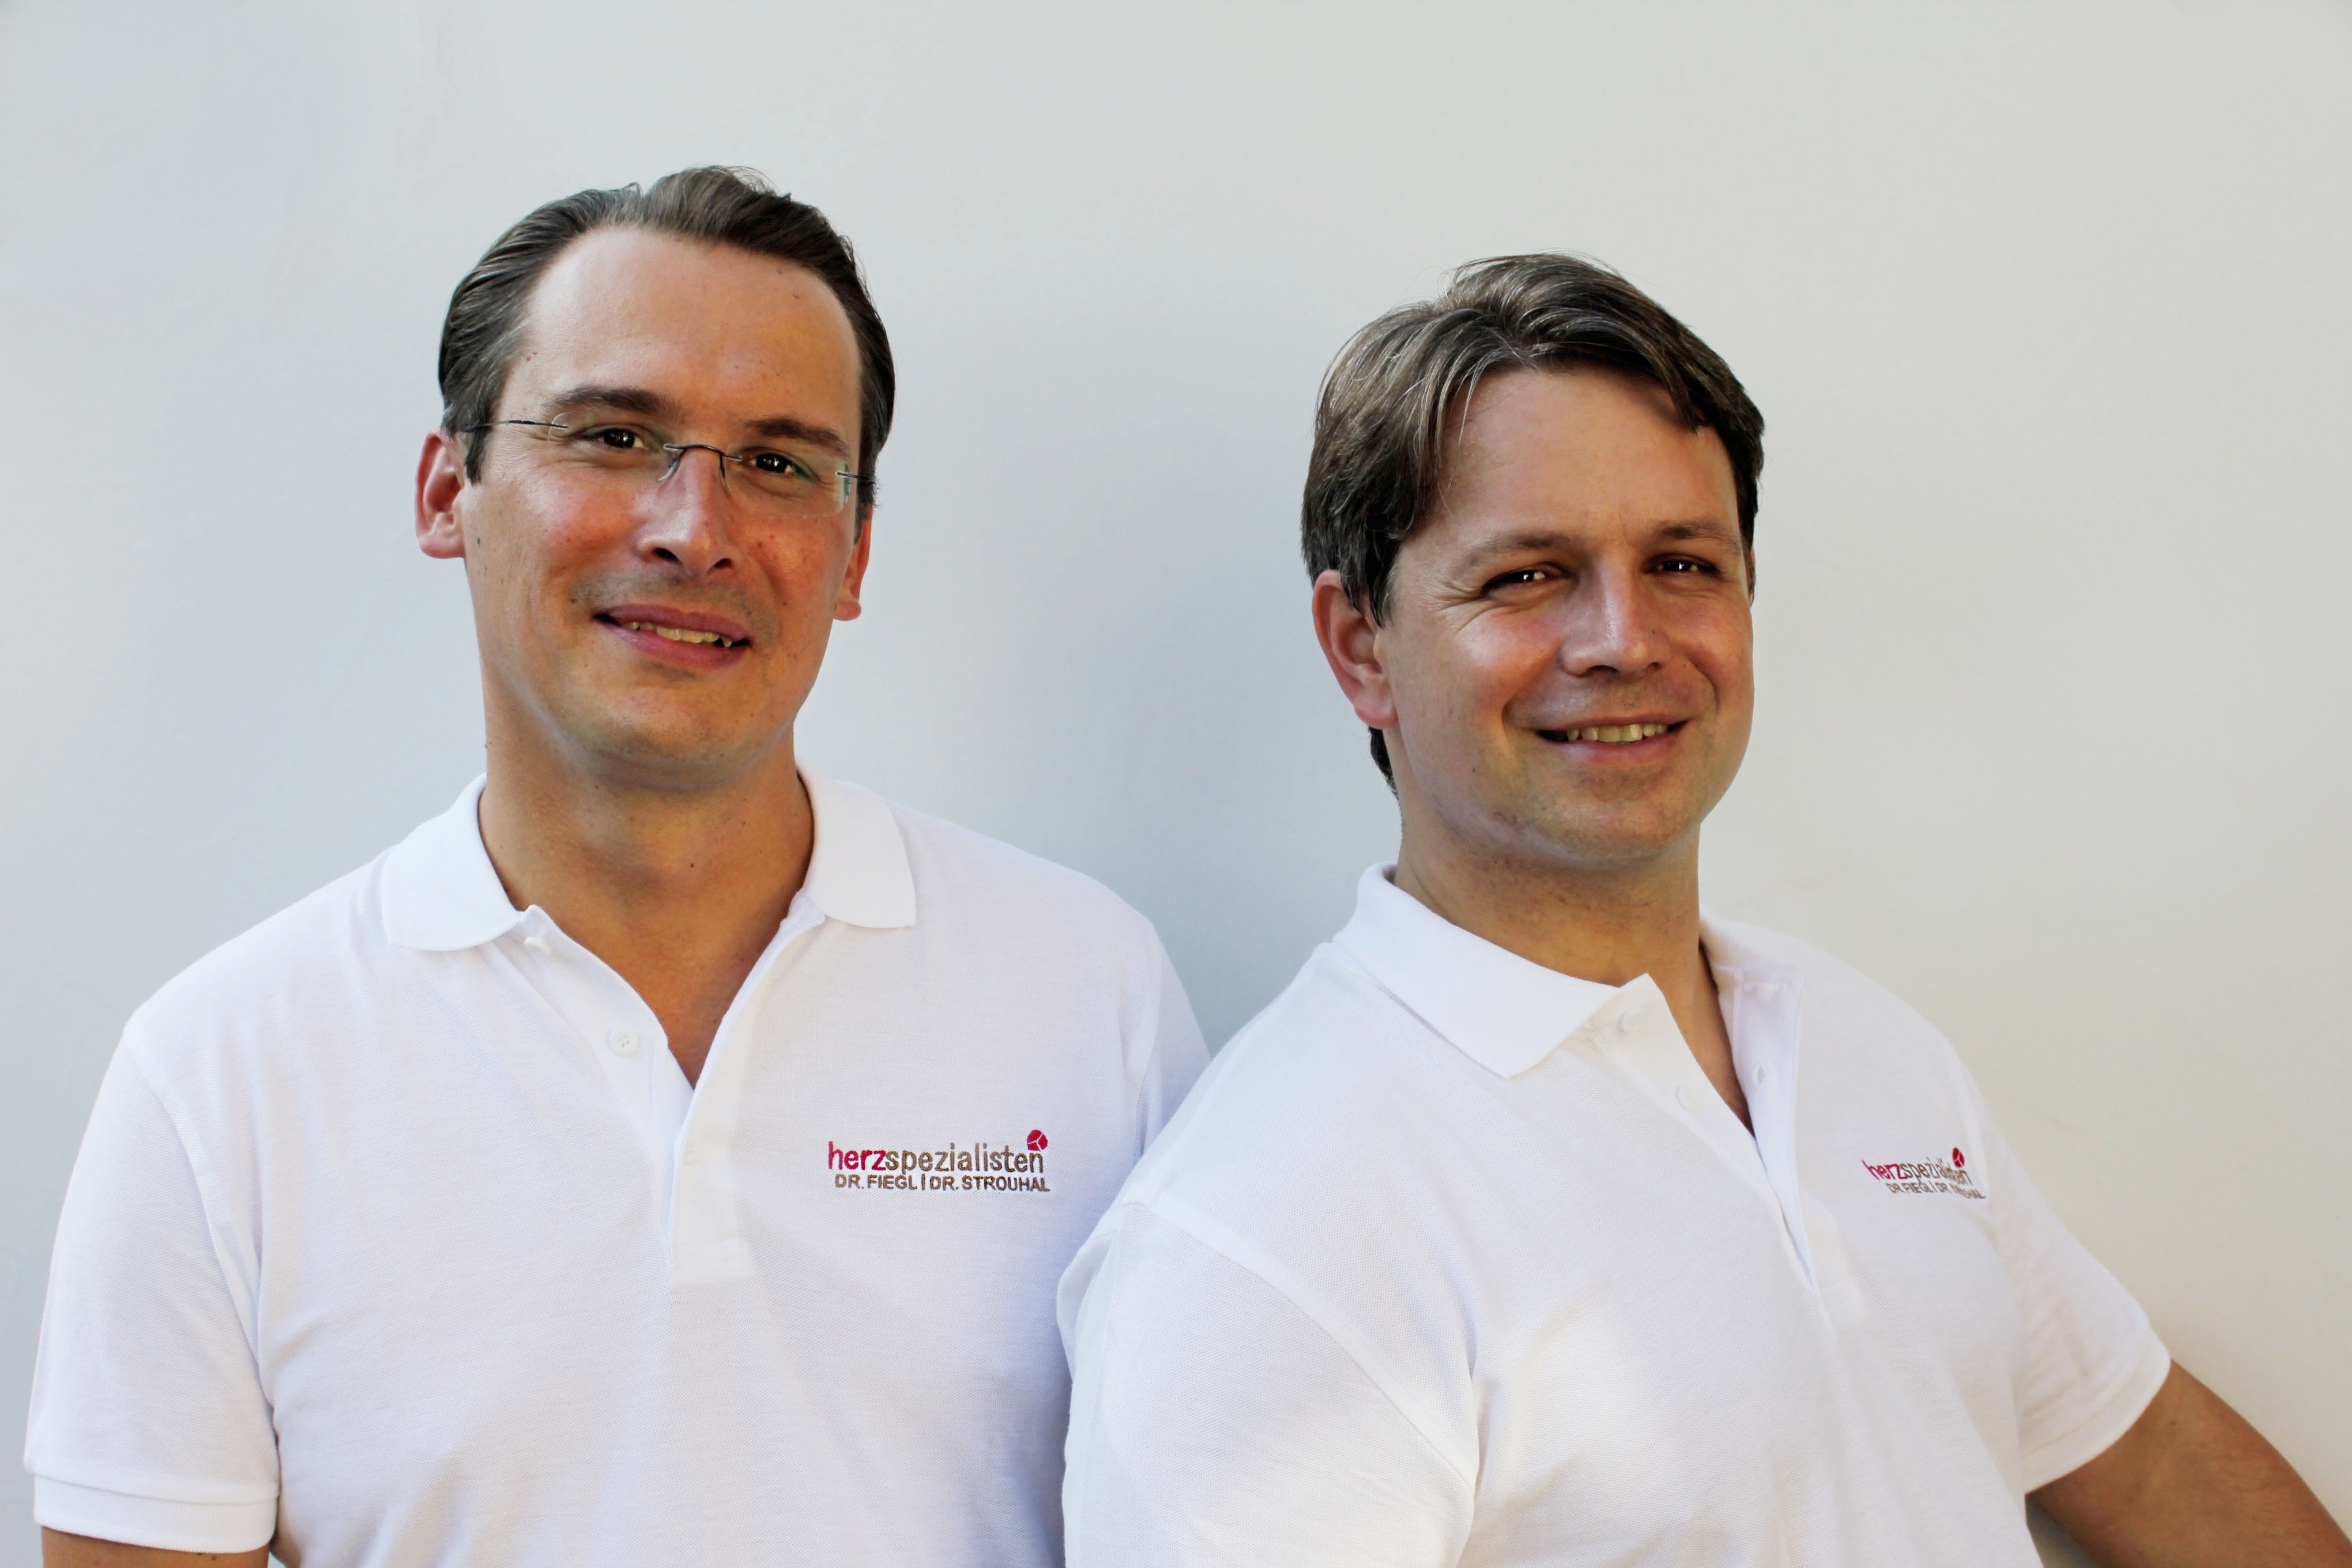 Dr. Nikolaus Fiegl & Dr. Andreas Strouhal